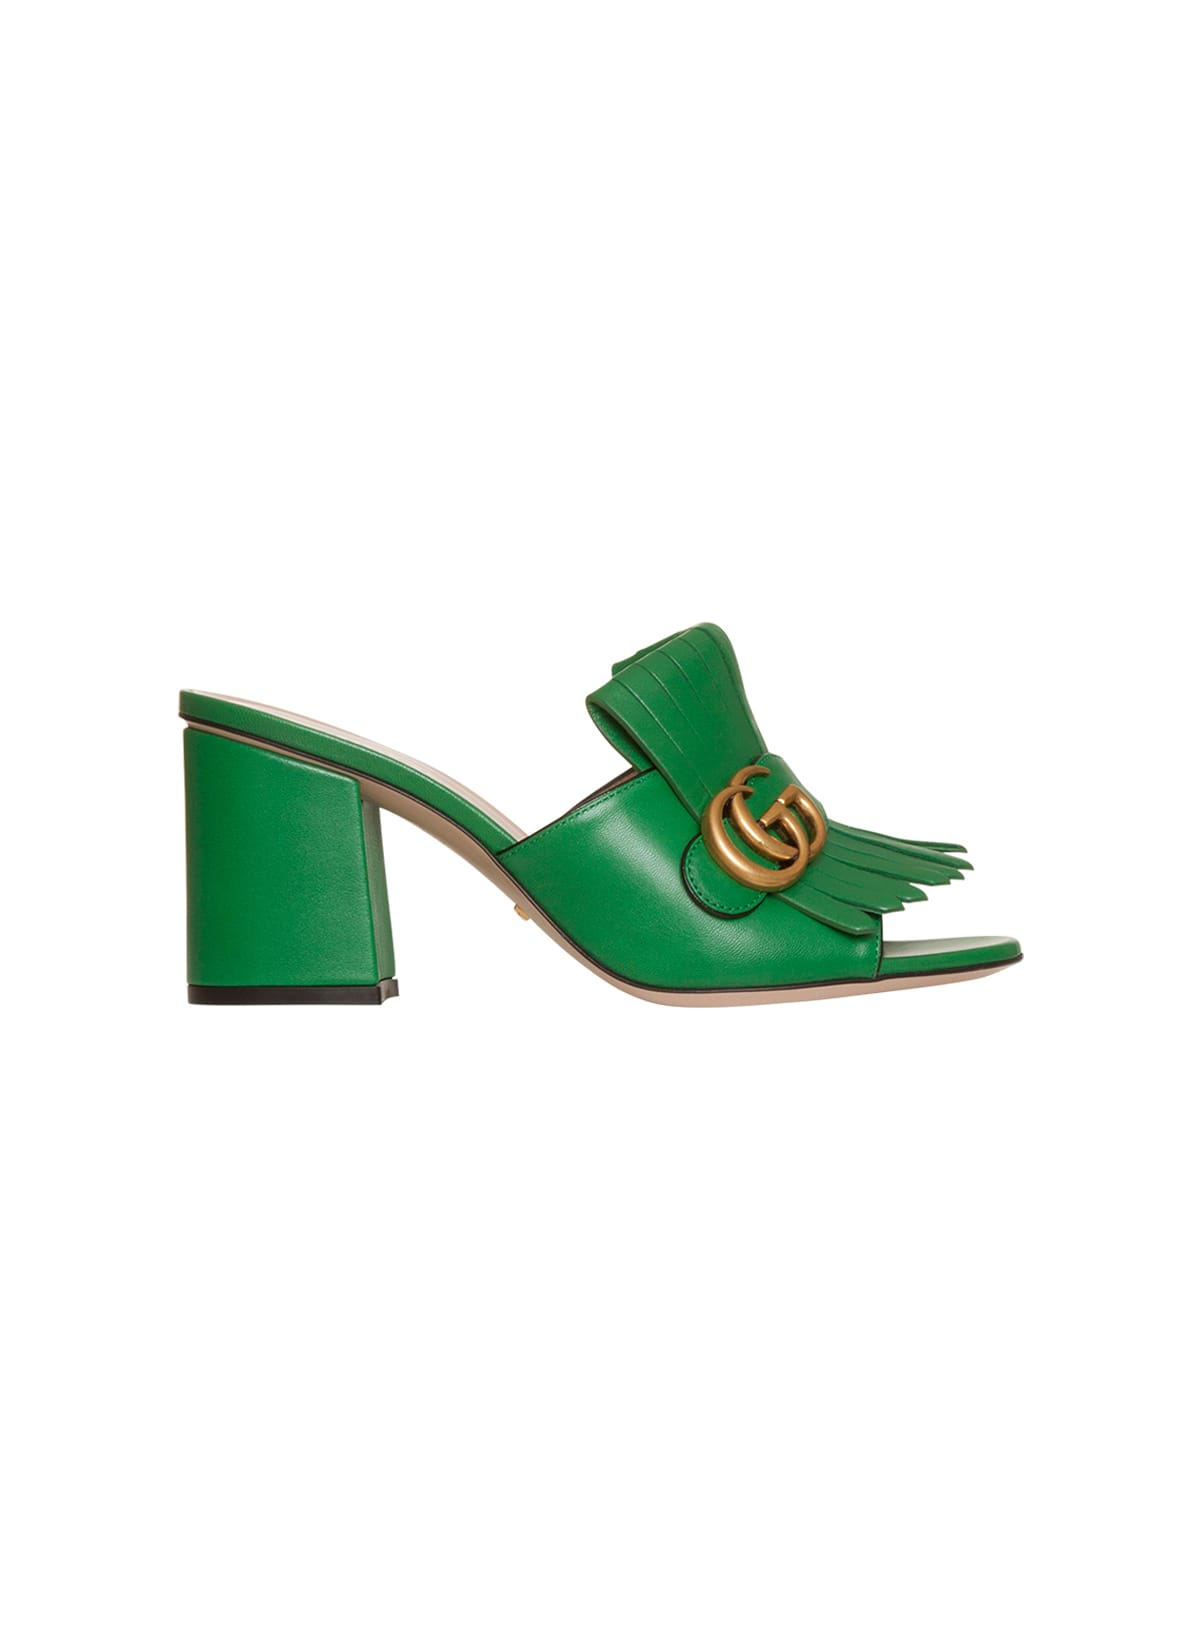 Gucci Leather Mid-Heel Slide With Double G In Verde